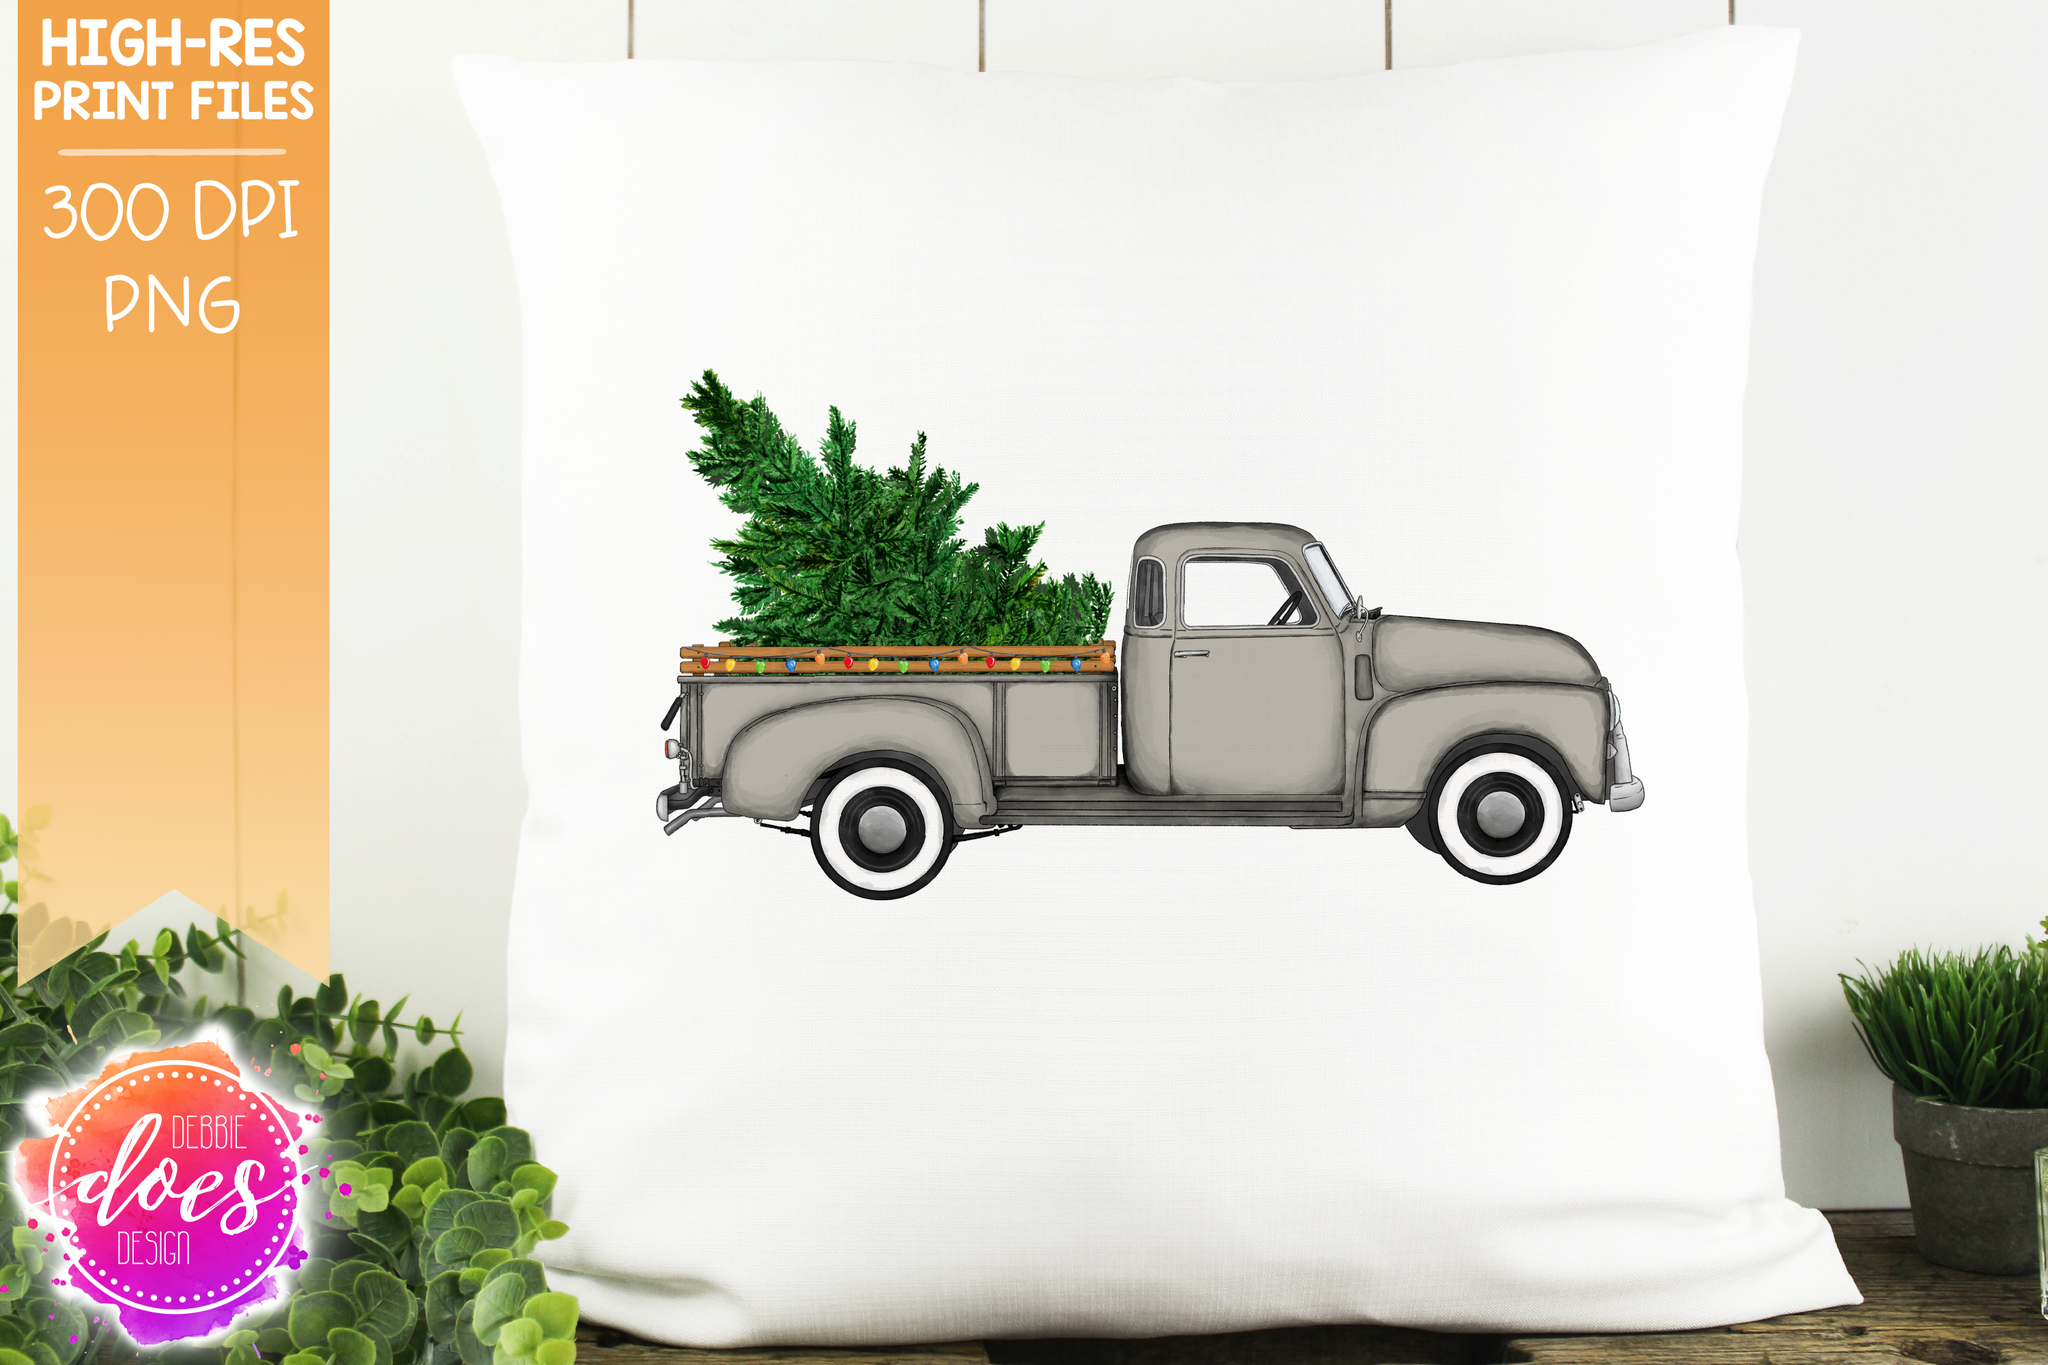 Christmas Tree and Lights Truck - Grey - Sublimation/Printable Design